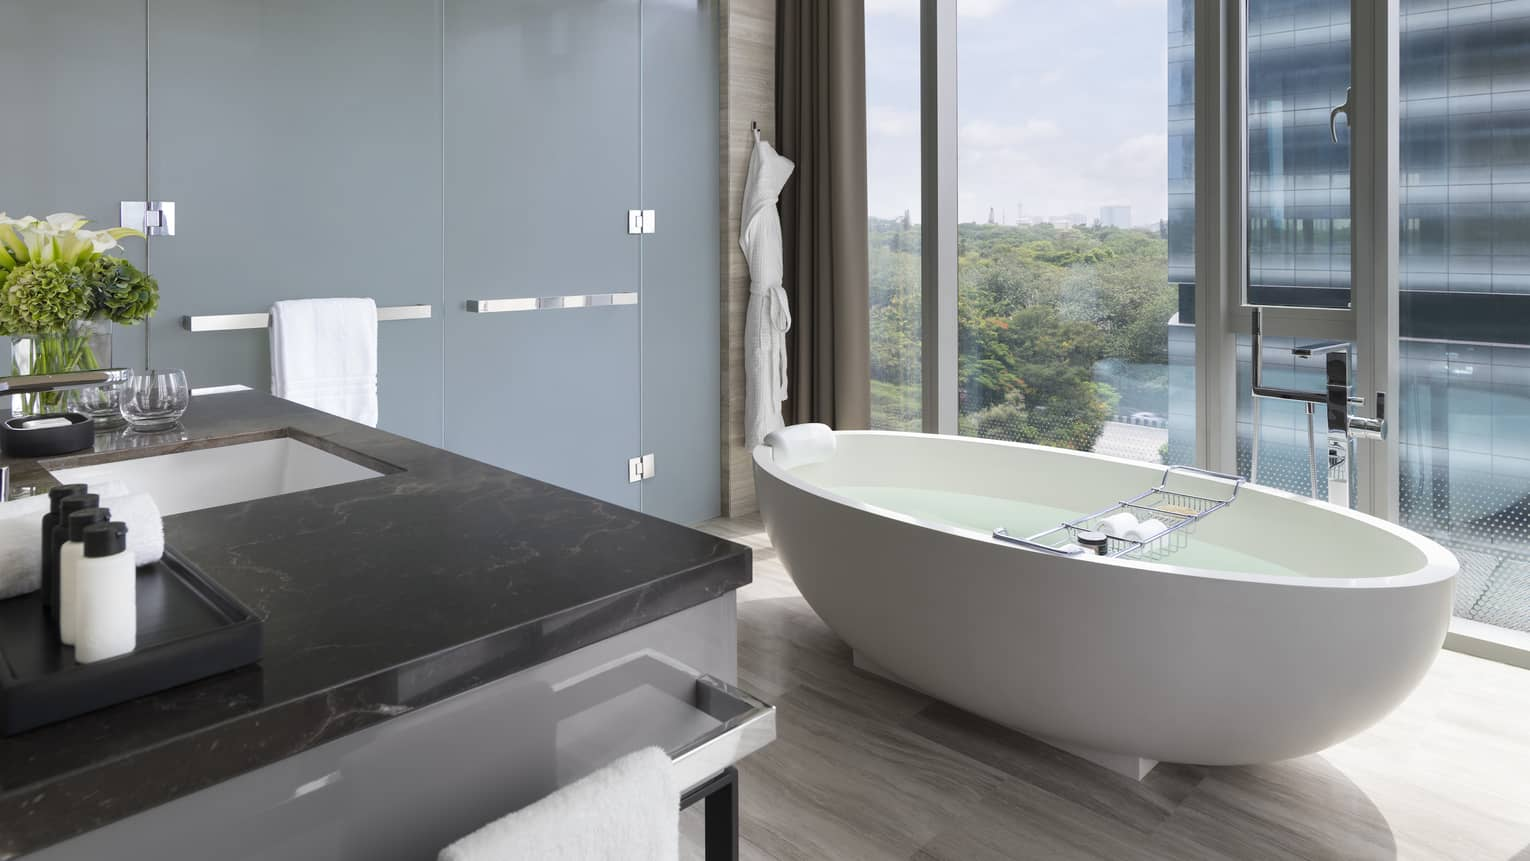 Bathroom with white free-standing tub set next to a floor-to-ceiling window